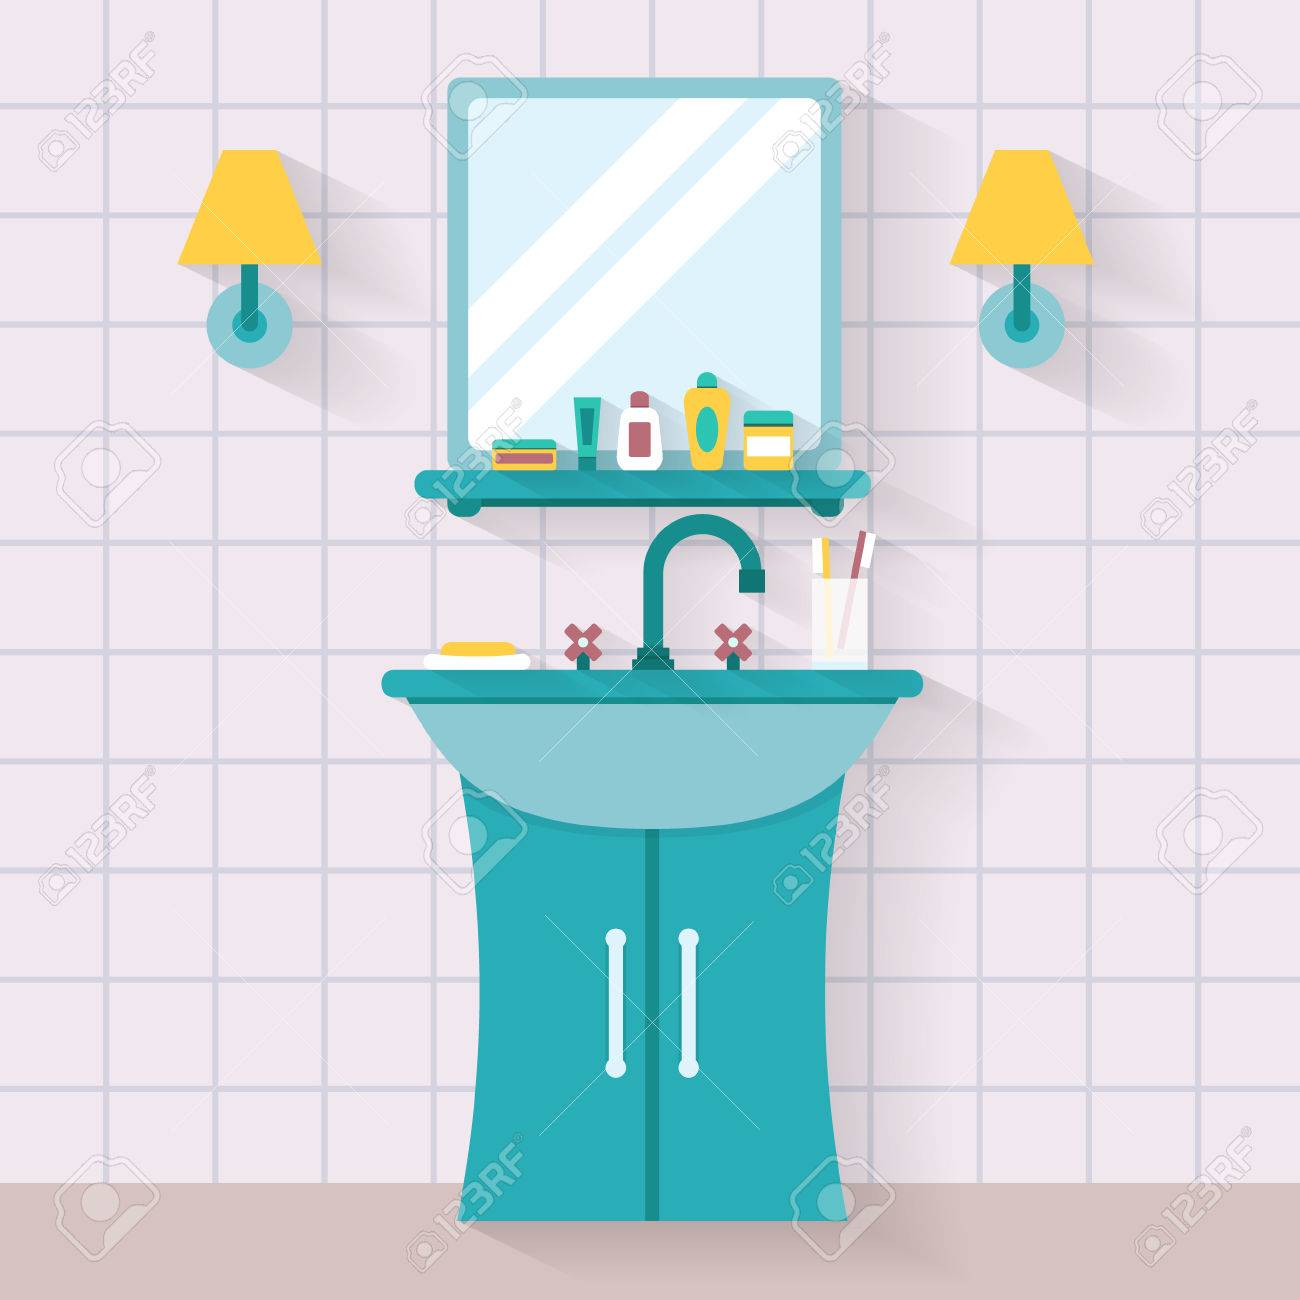 Bathroom Sink With Mirror Flat Style Vector Illustration Royalty